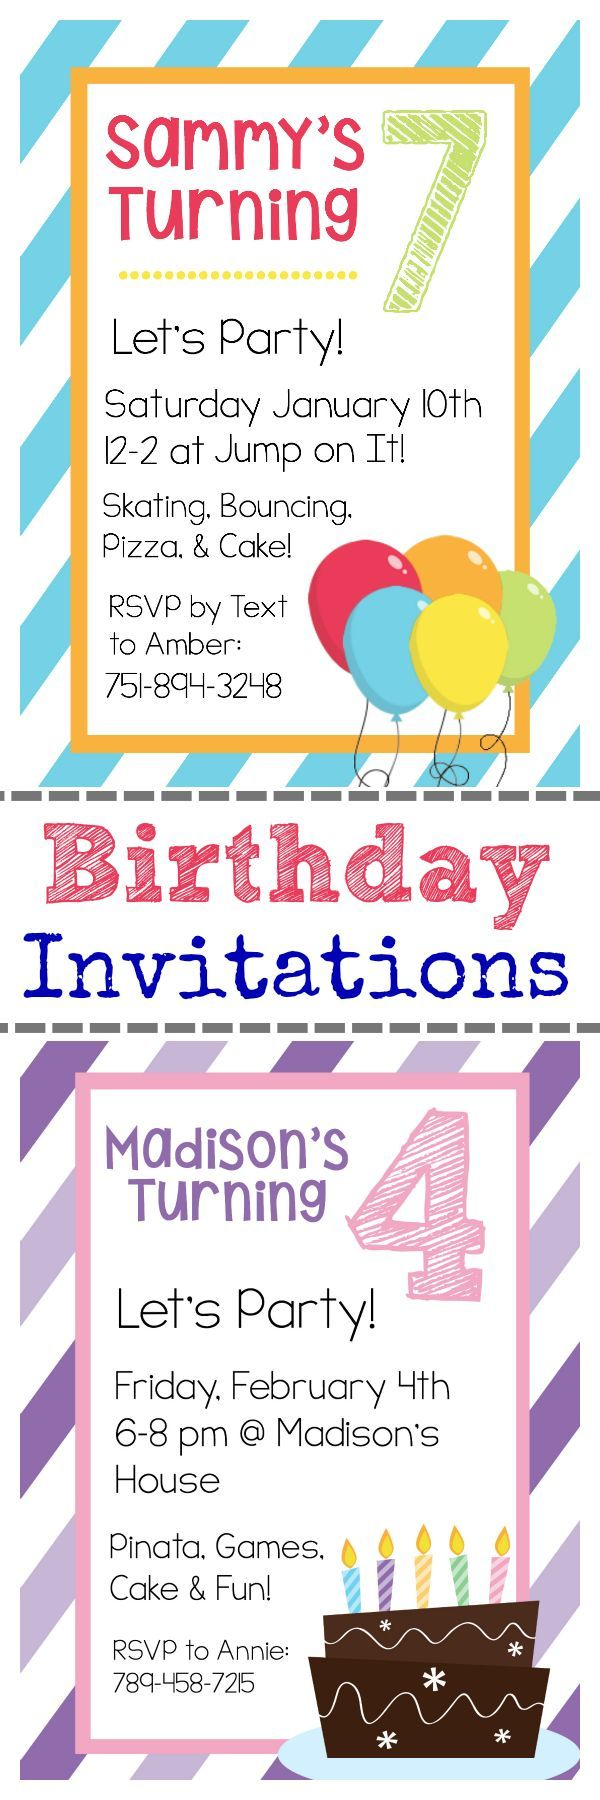 Free Printable Birthday Invitation Templates | Free printable ...